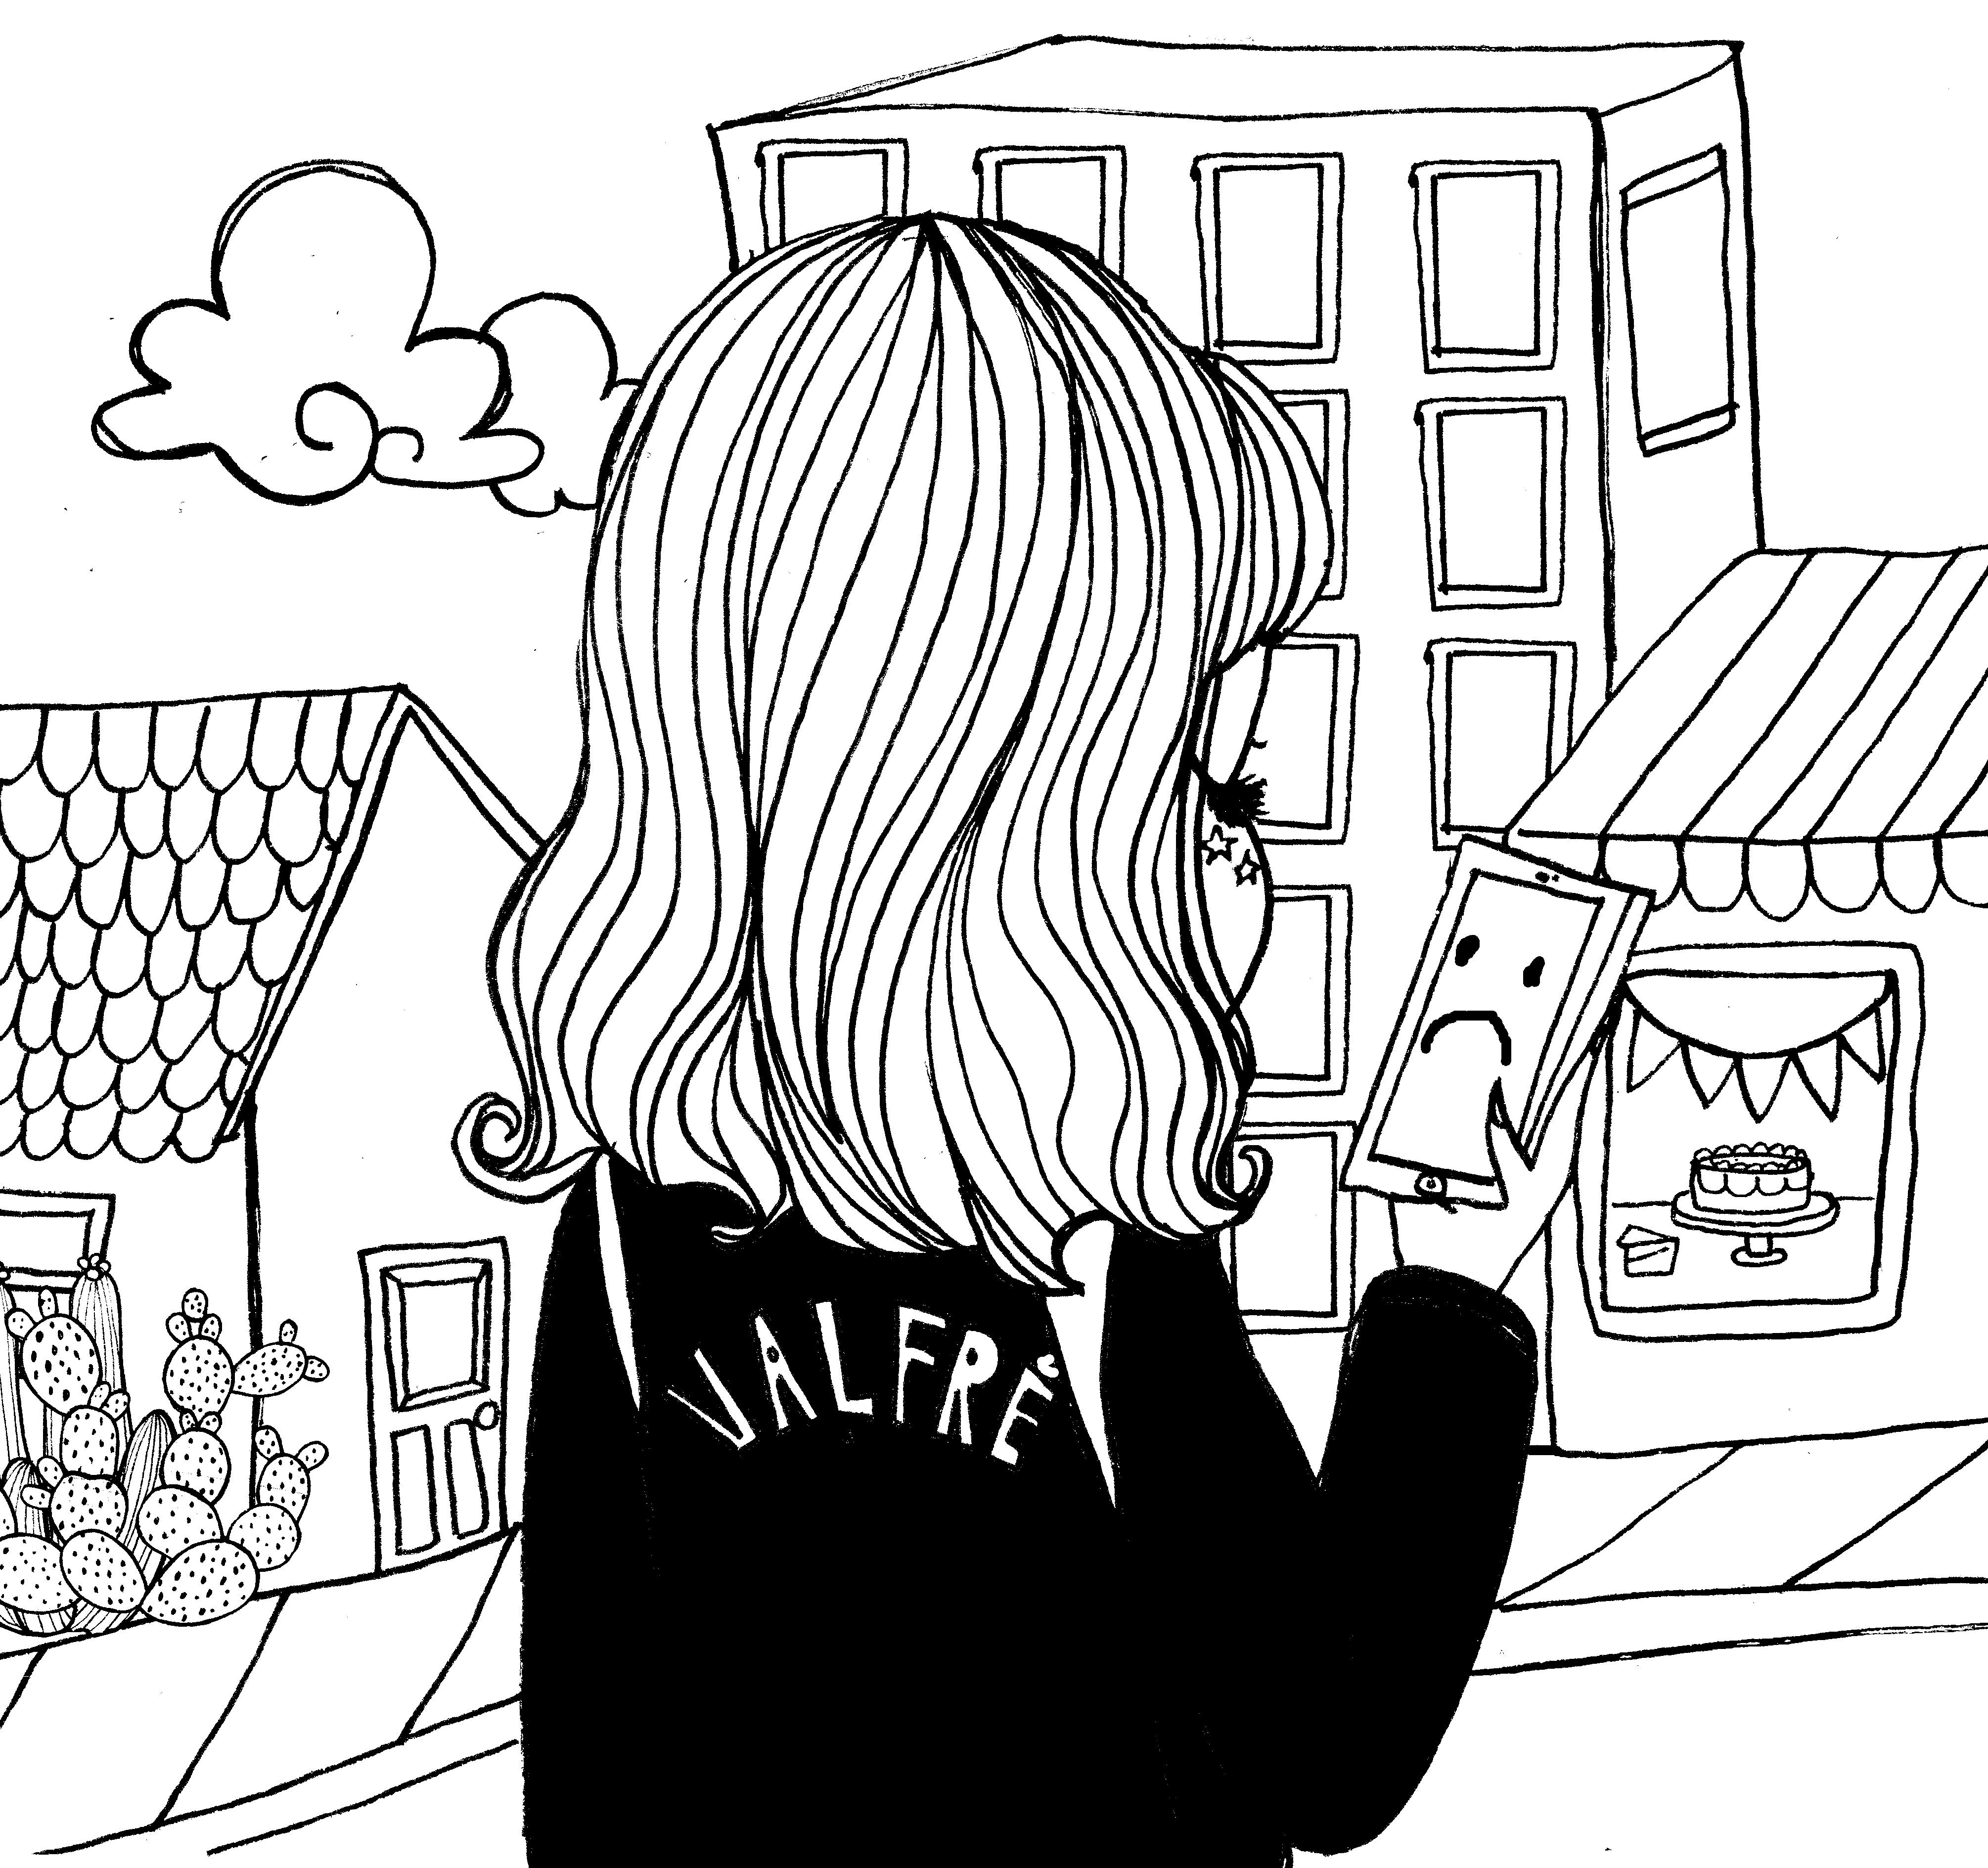 Valfrecolorme Coloring Pages Coloring Pages Fun Illustration Art